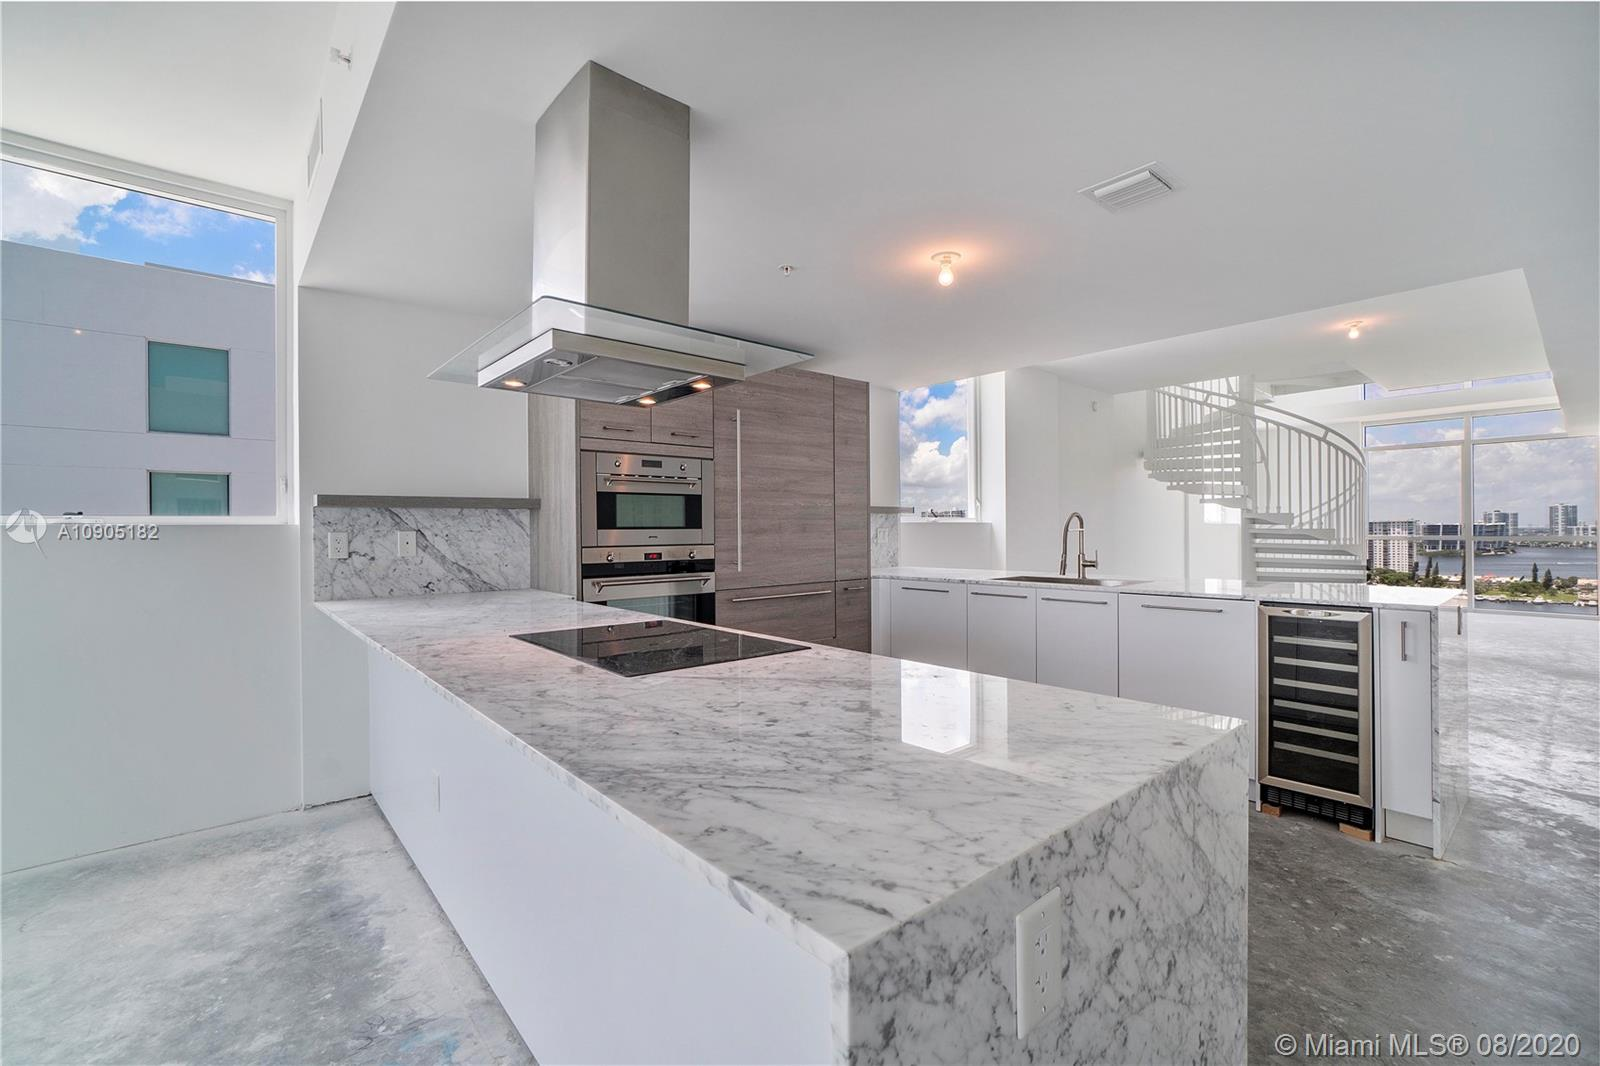 400 SUNNY ISLES UNIT PH 2015 PHOTO